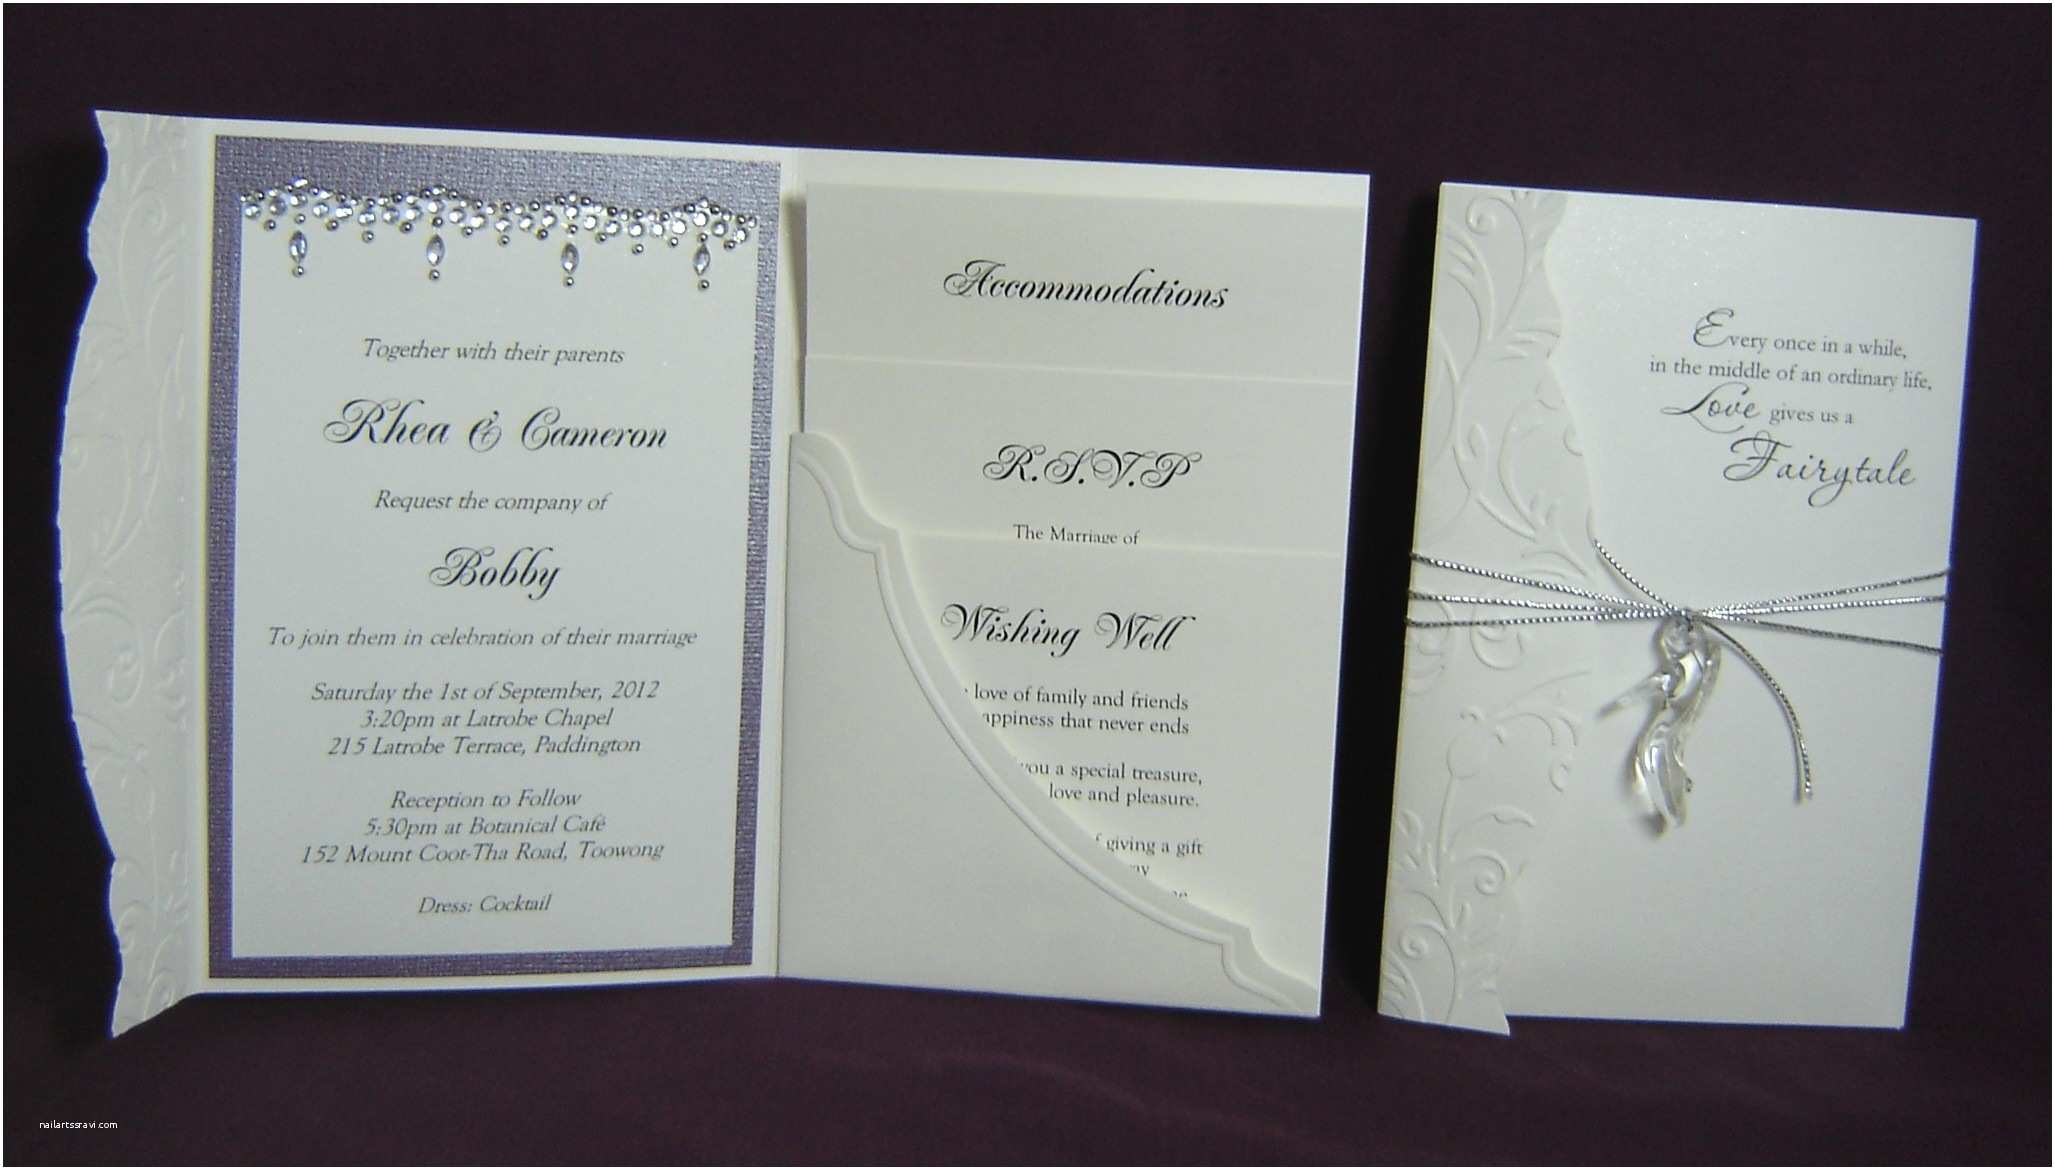 Wedding Invitation Advice Tips for Choosing Fairytale Wedding Invitations Ideas